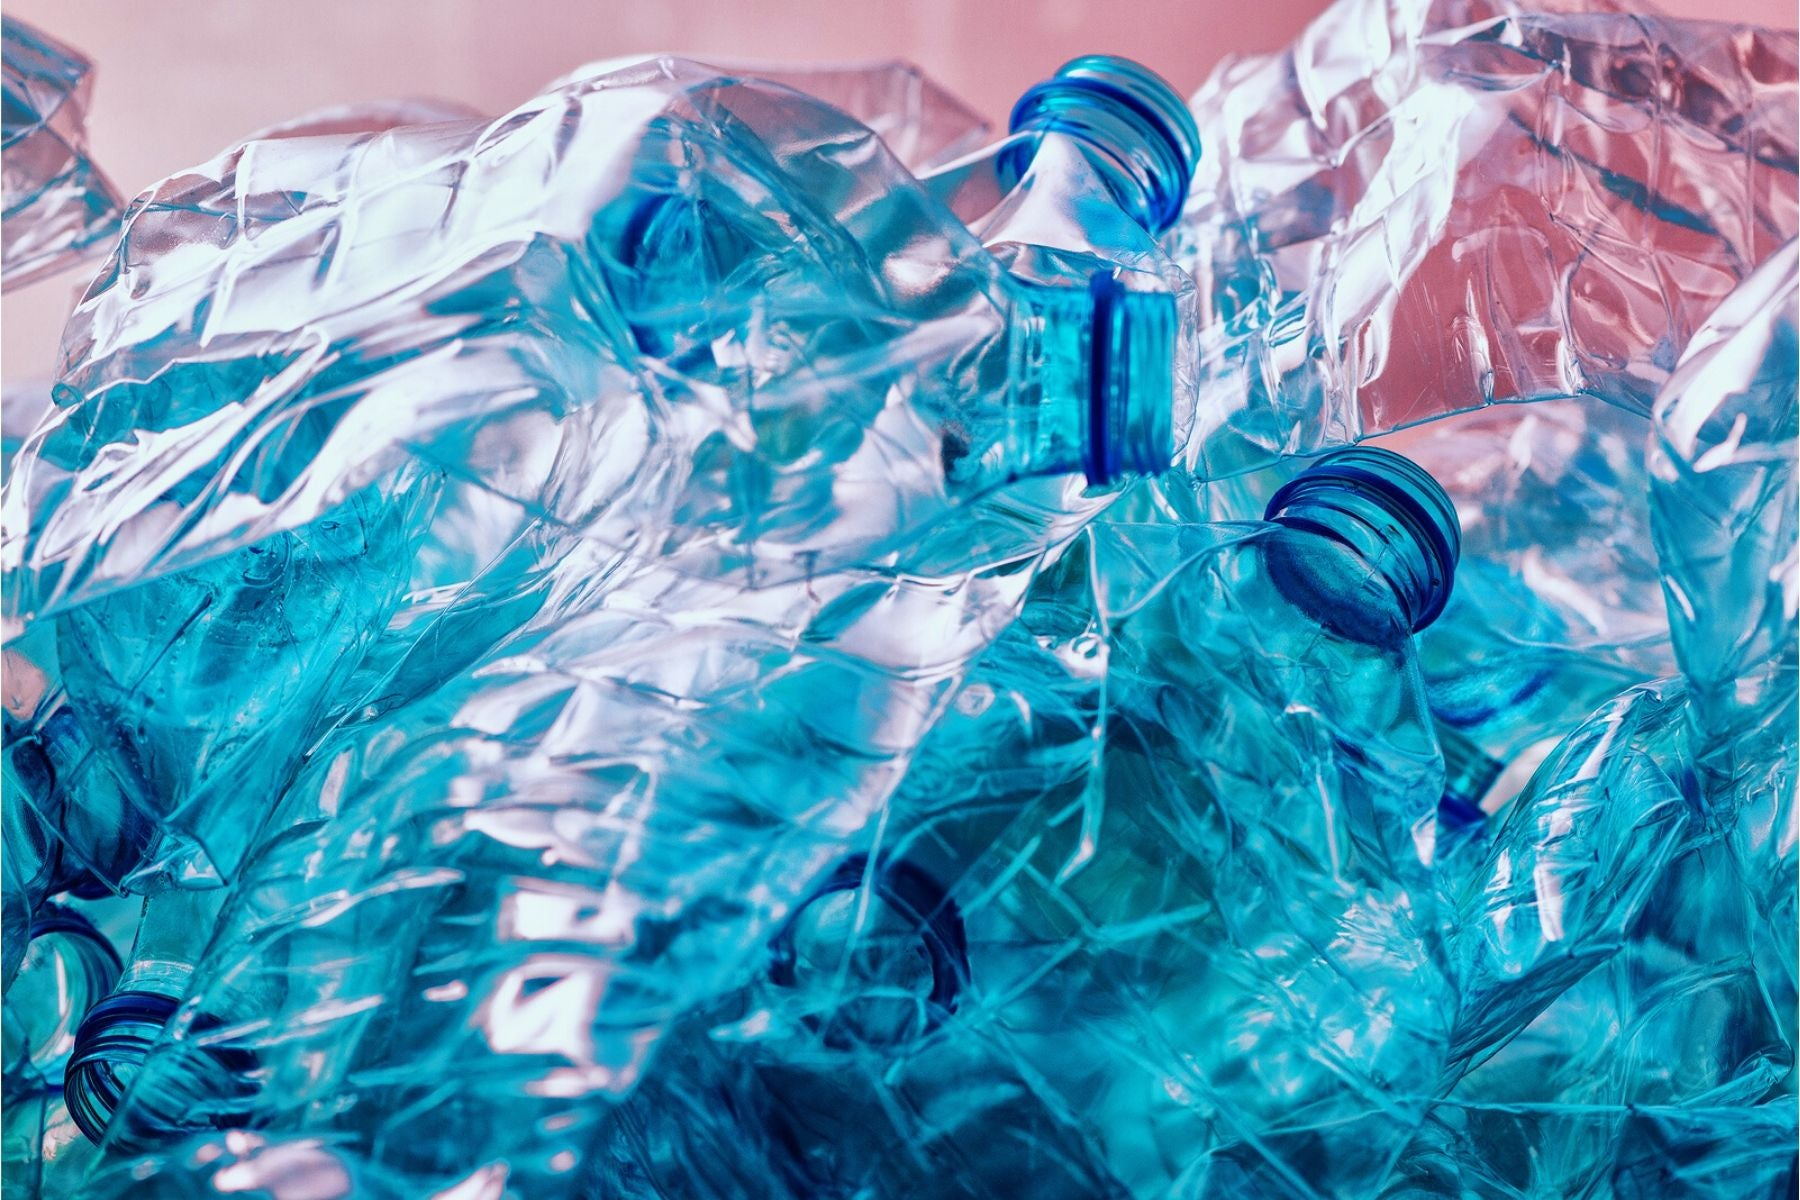 Stop Polluting the Planet with Disposable Plastic Water Bottles